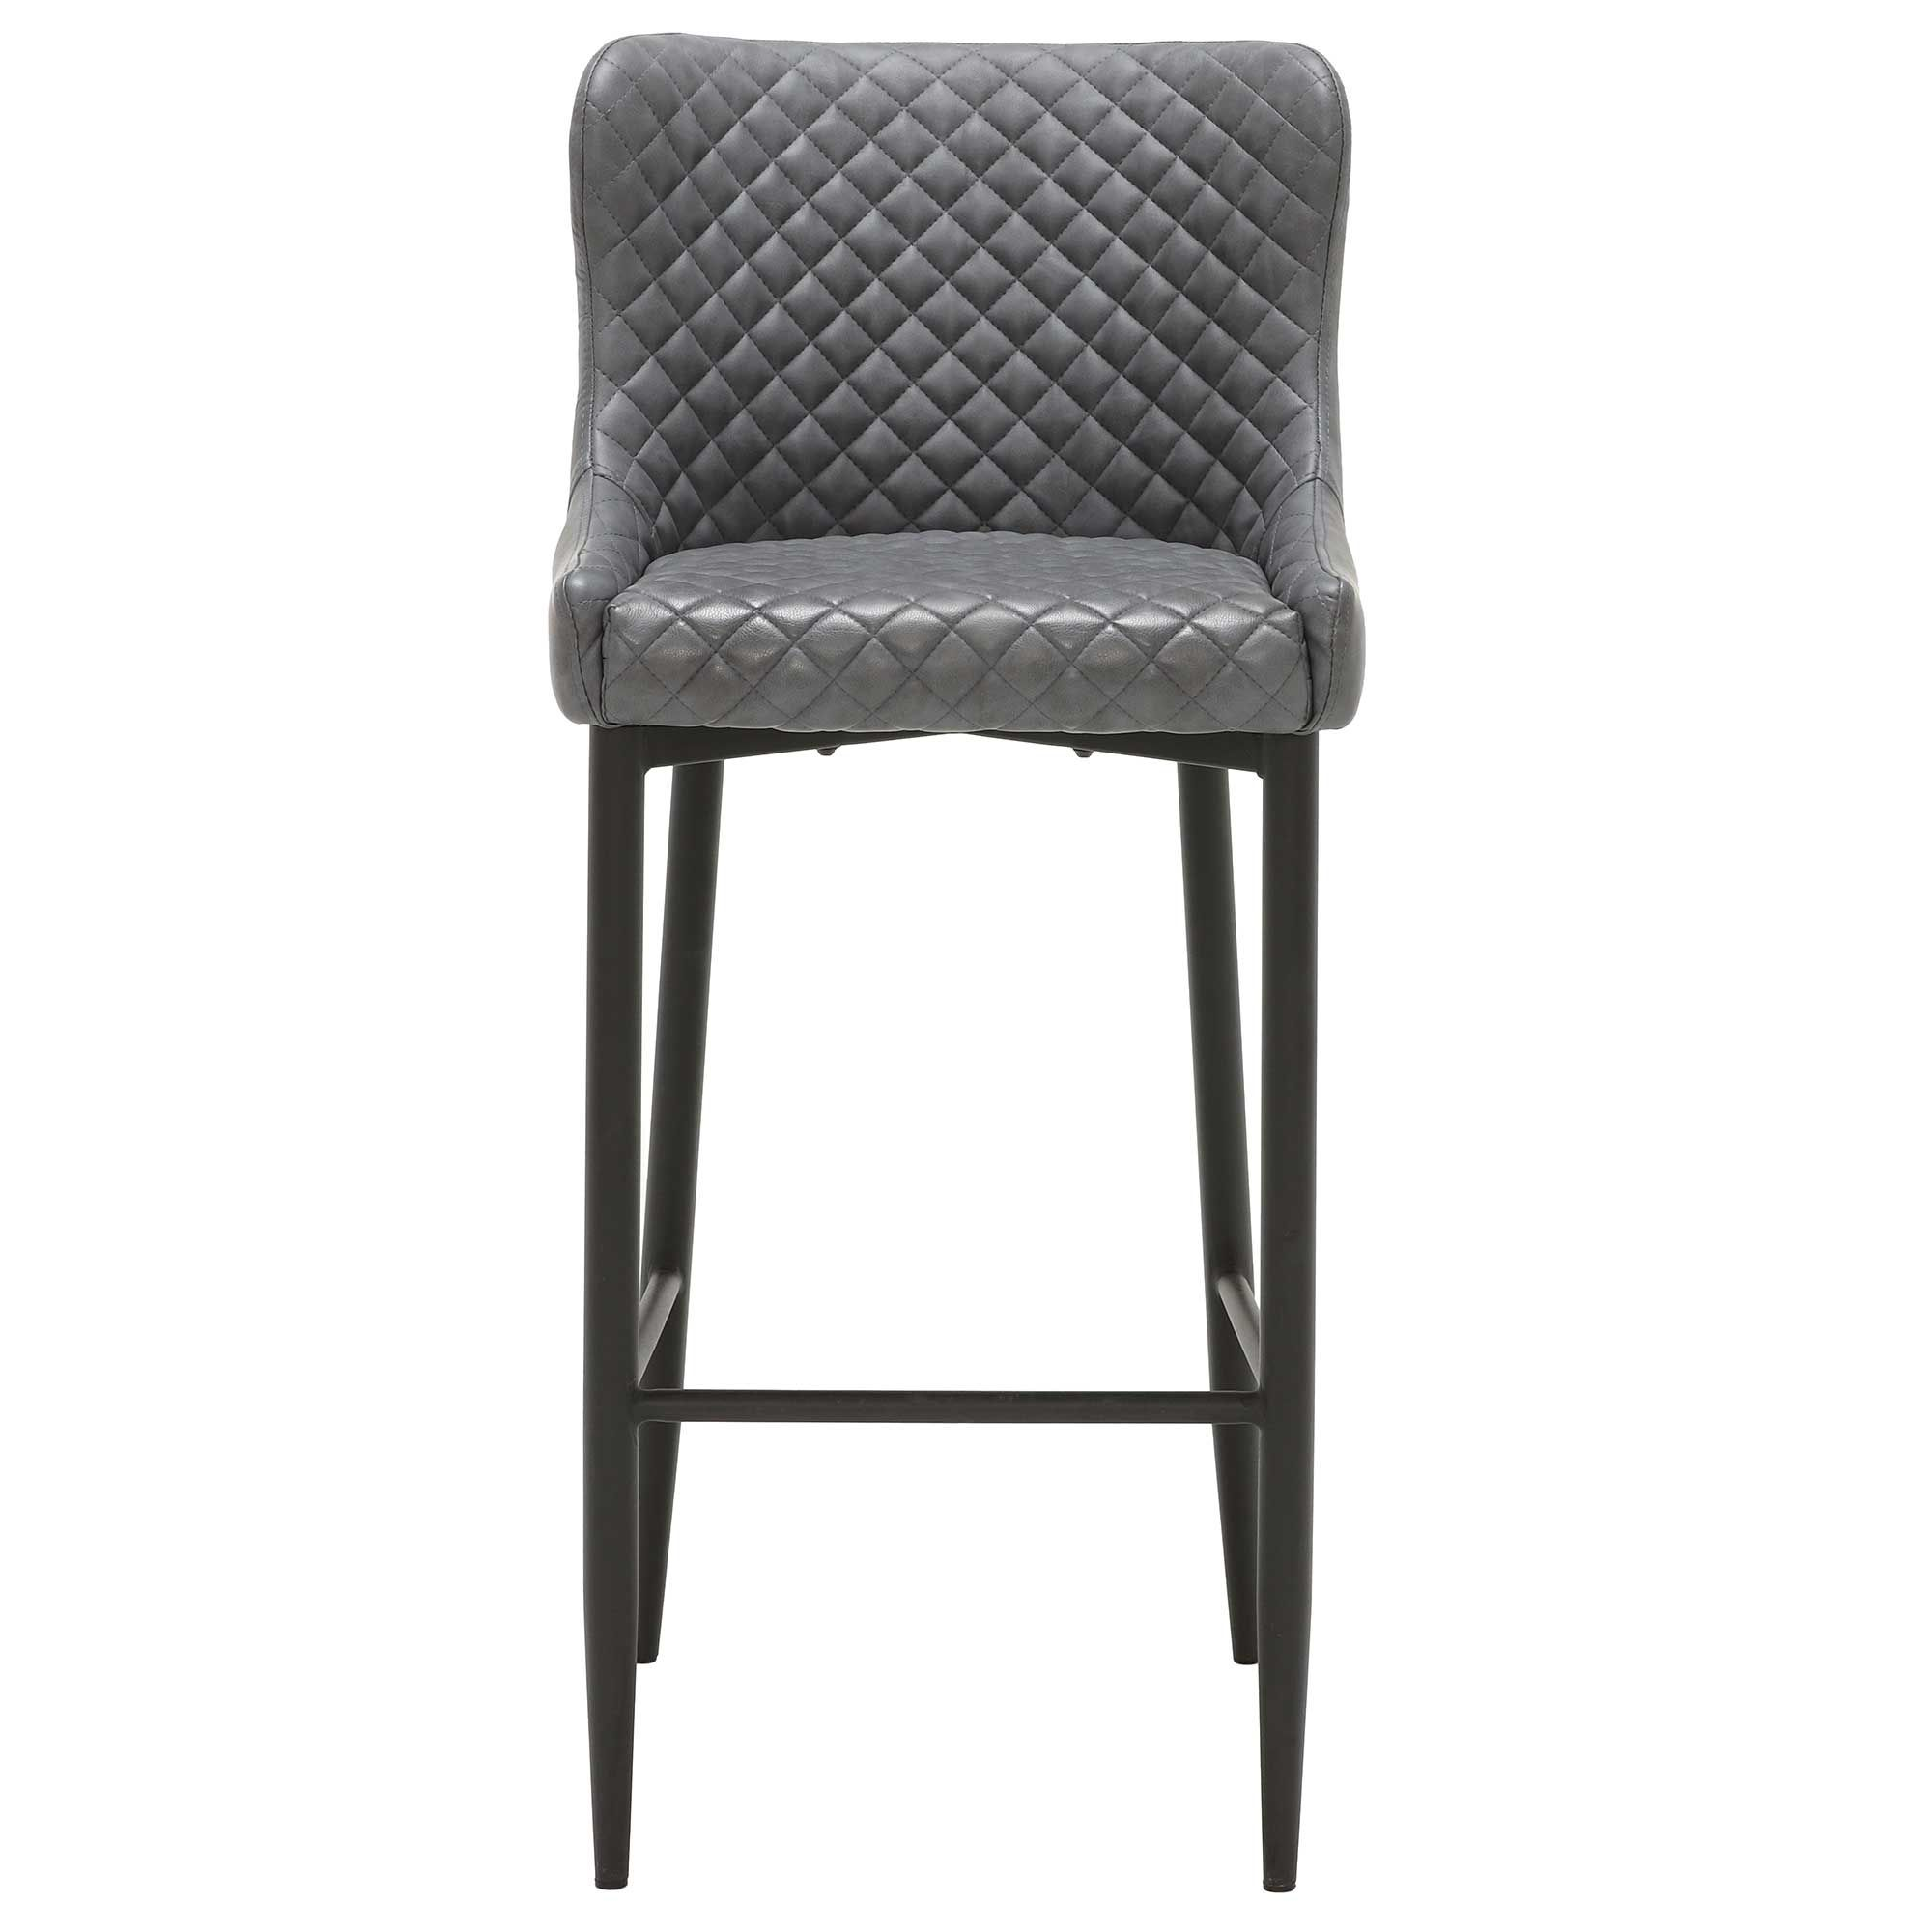 Super Rivington Upholstered Bar Stool Barstools Dining Room Machost Co Dining Chair Design Ideas Machostcouk